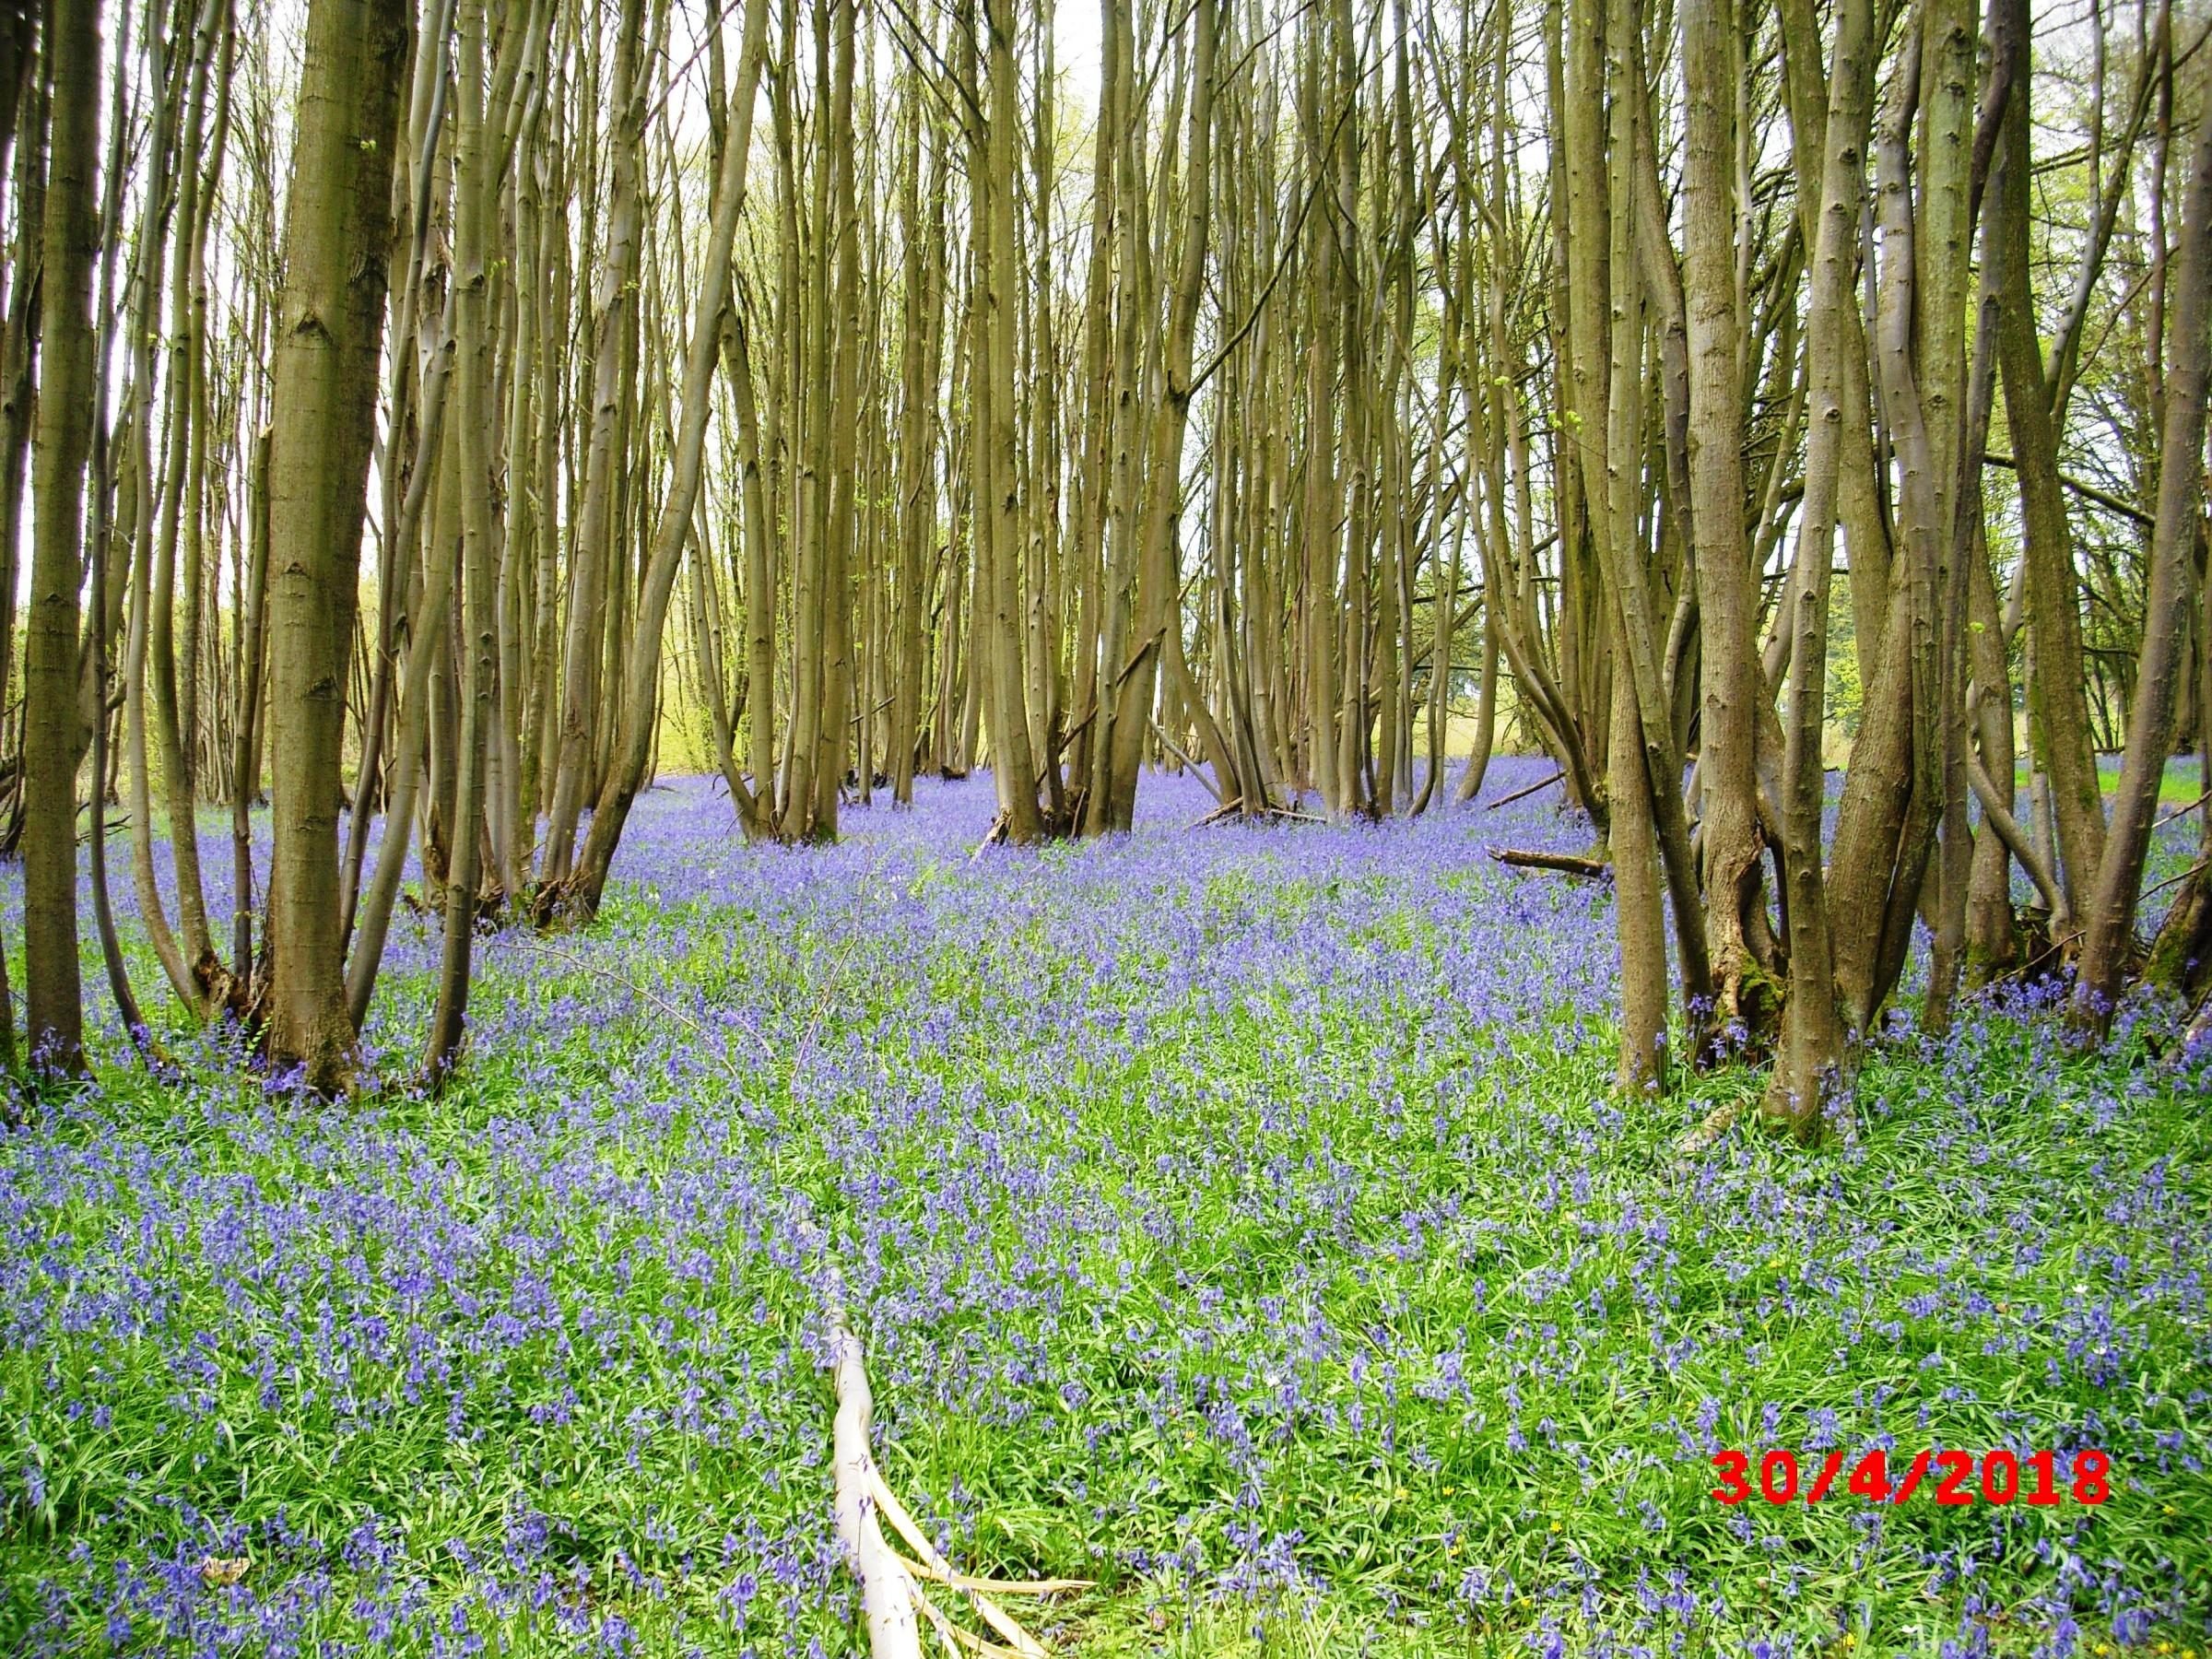 Shrawley Bluebell Walks